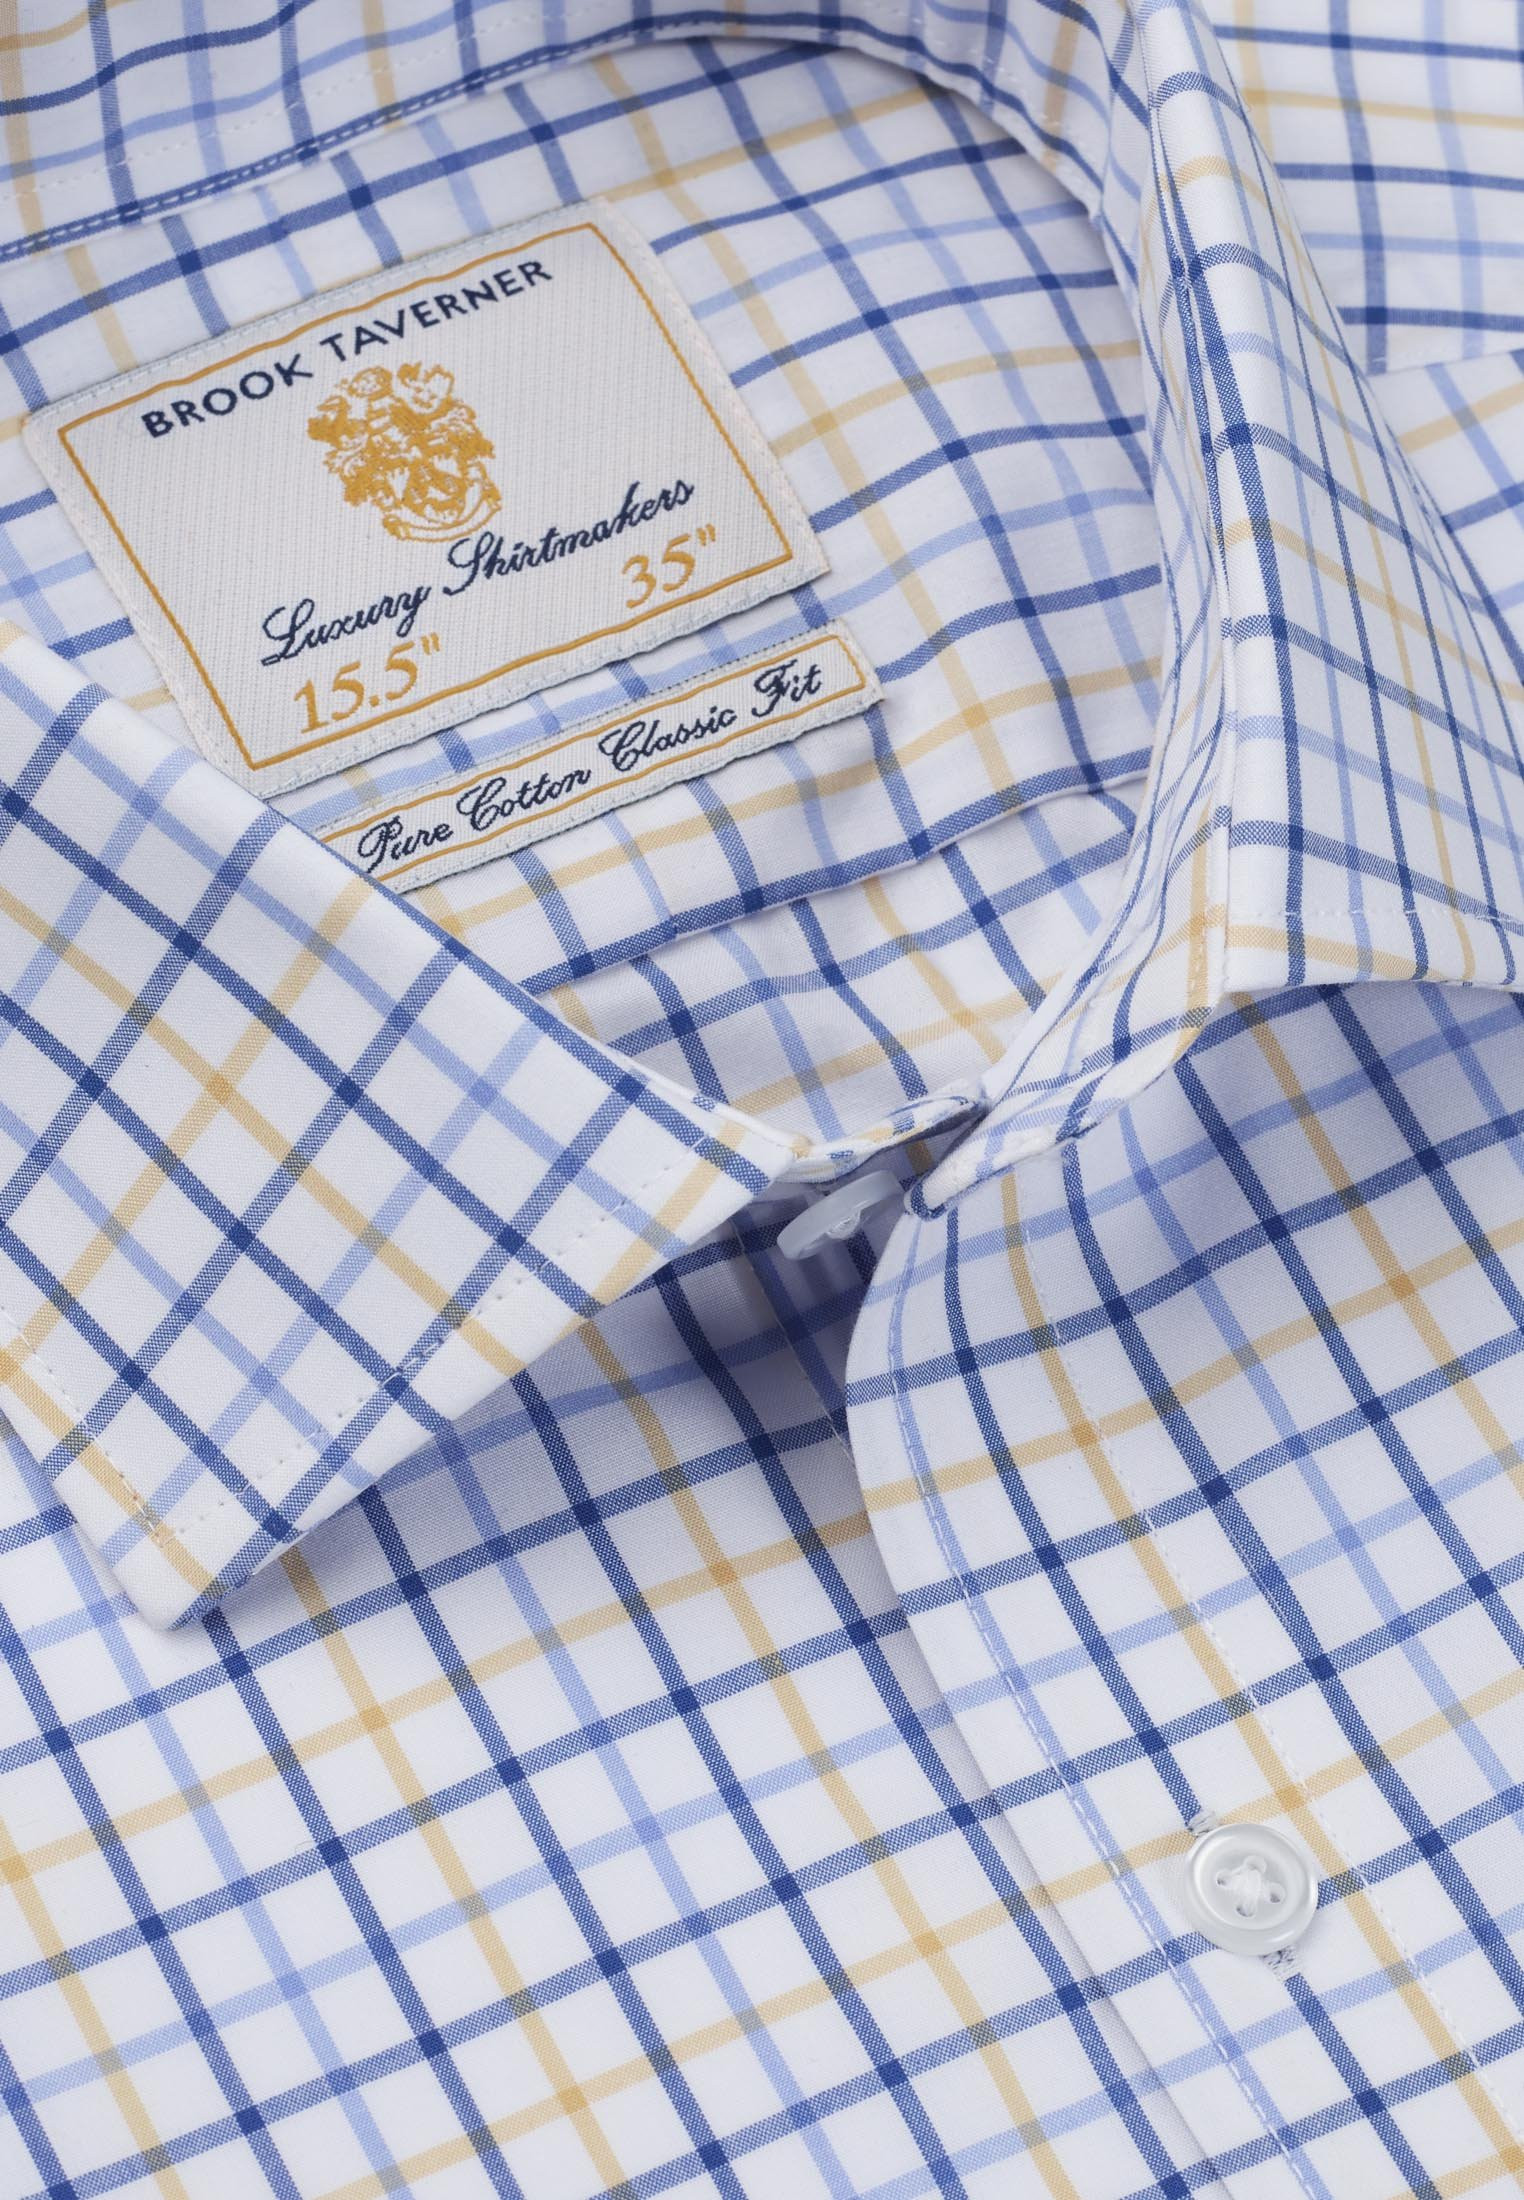 Long And Short Sleeve Navy, Blue And Yellow Neat Check Shirt